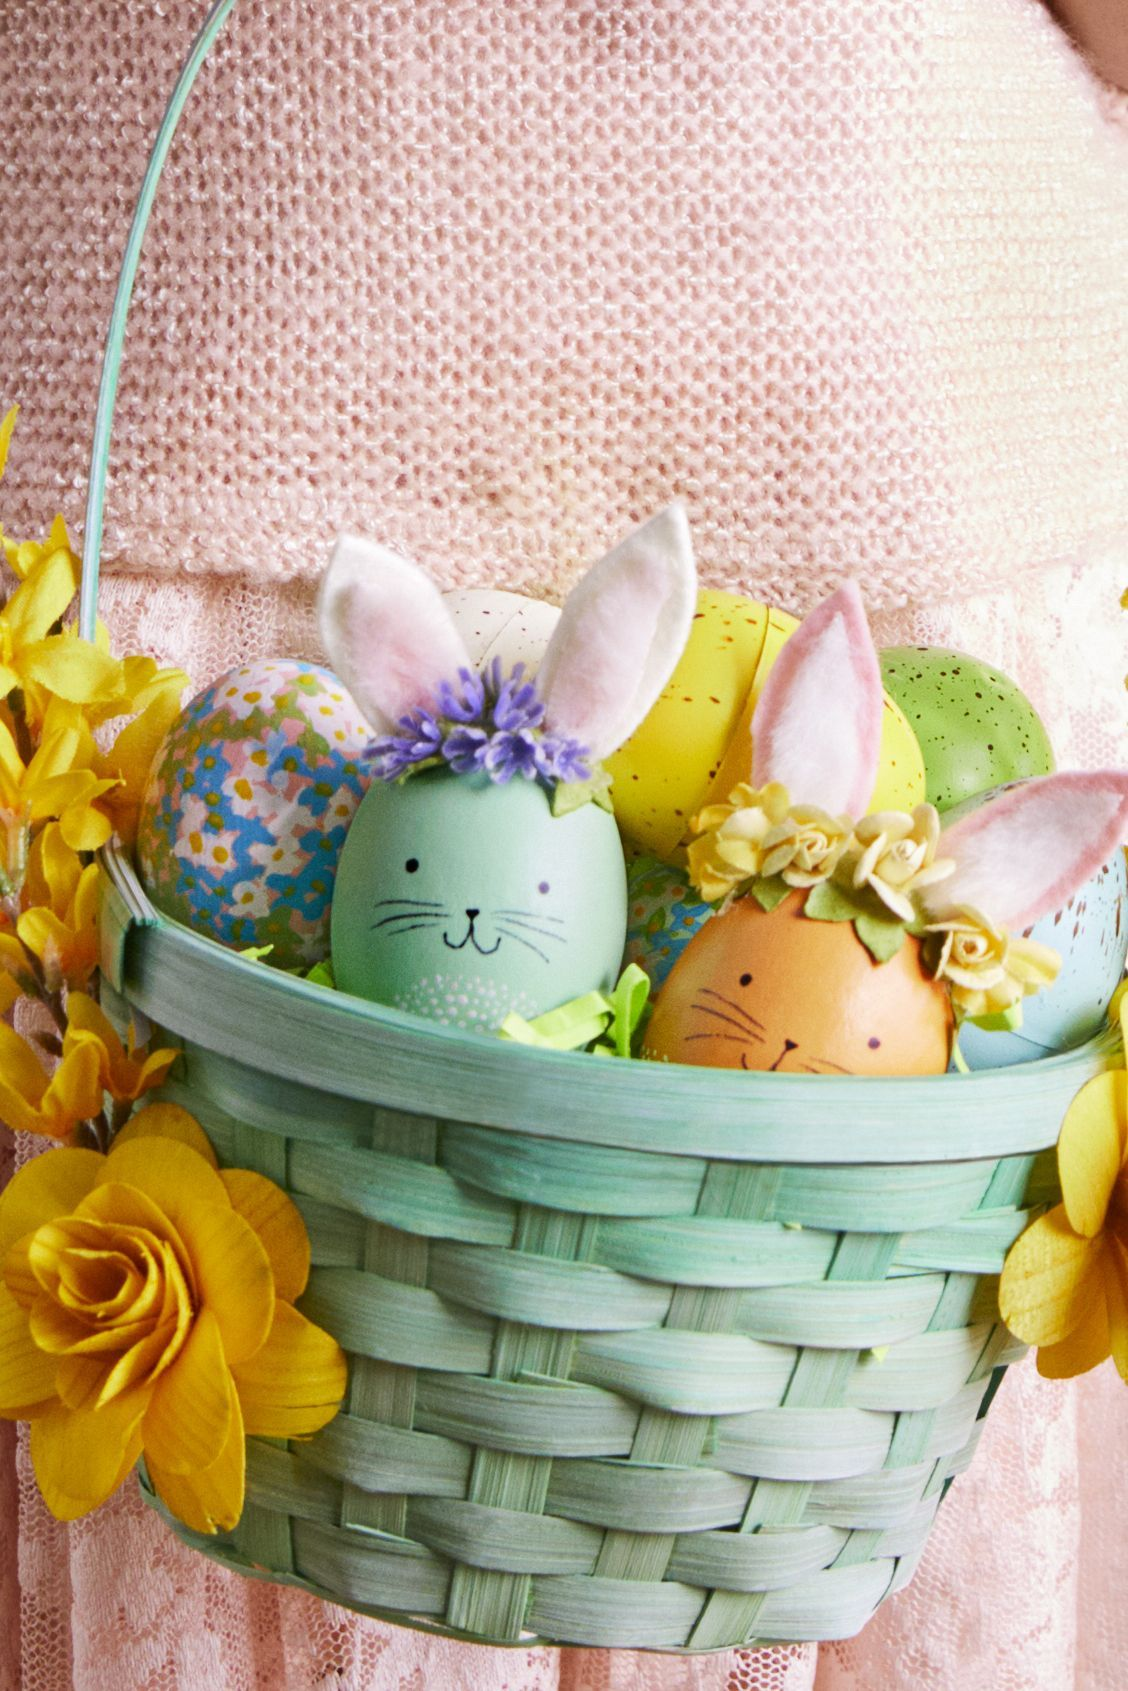 10+ Easy Easter Egg Decorating Ideas - Creative Designs for Easter